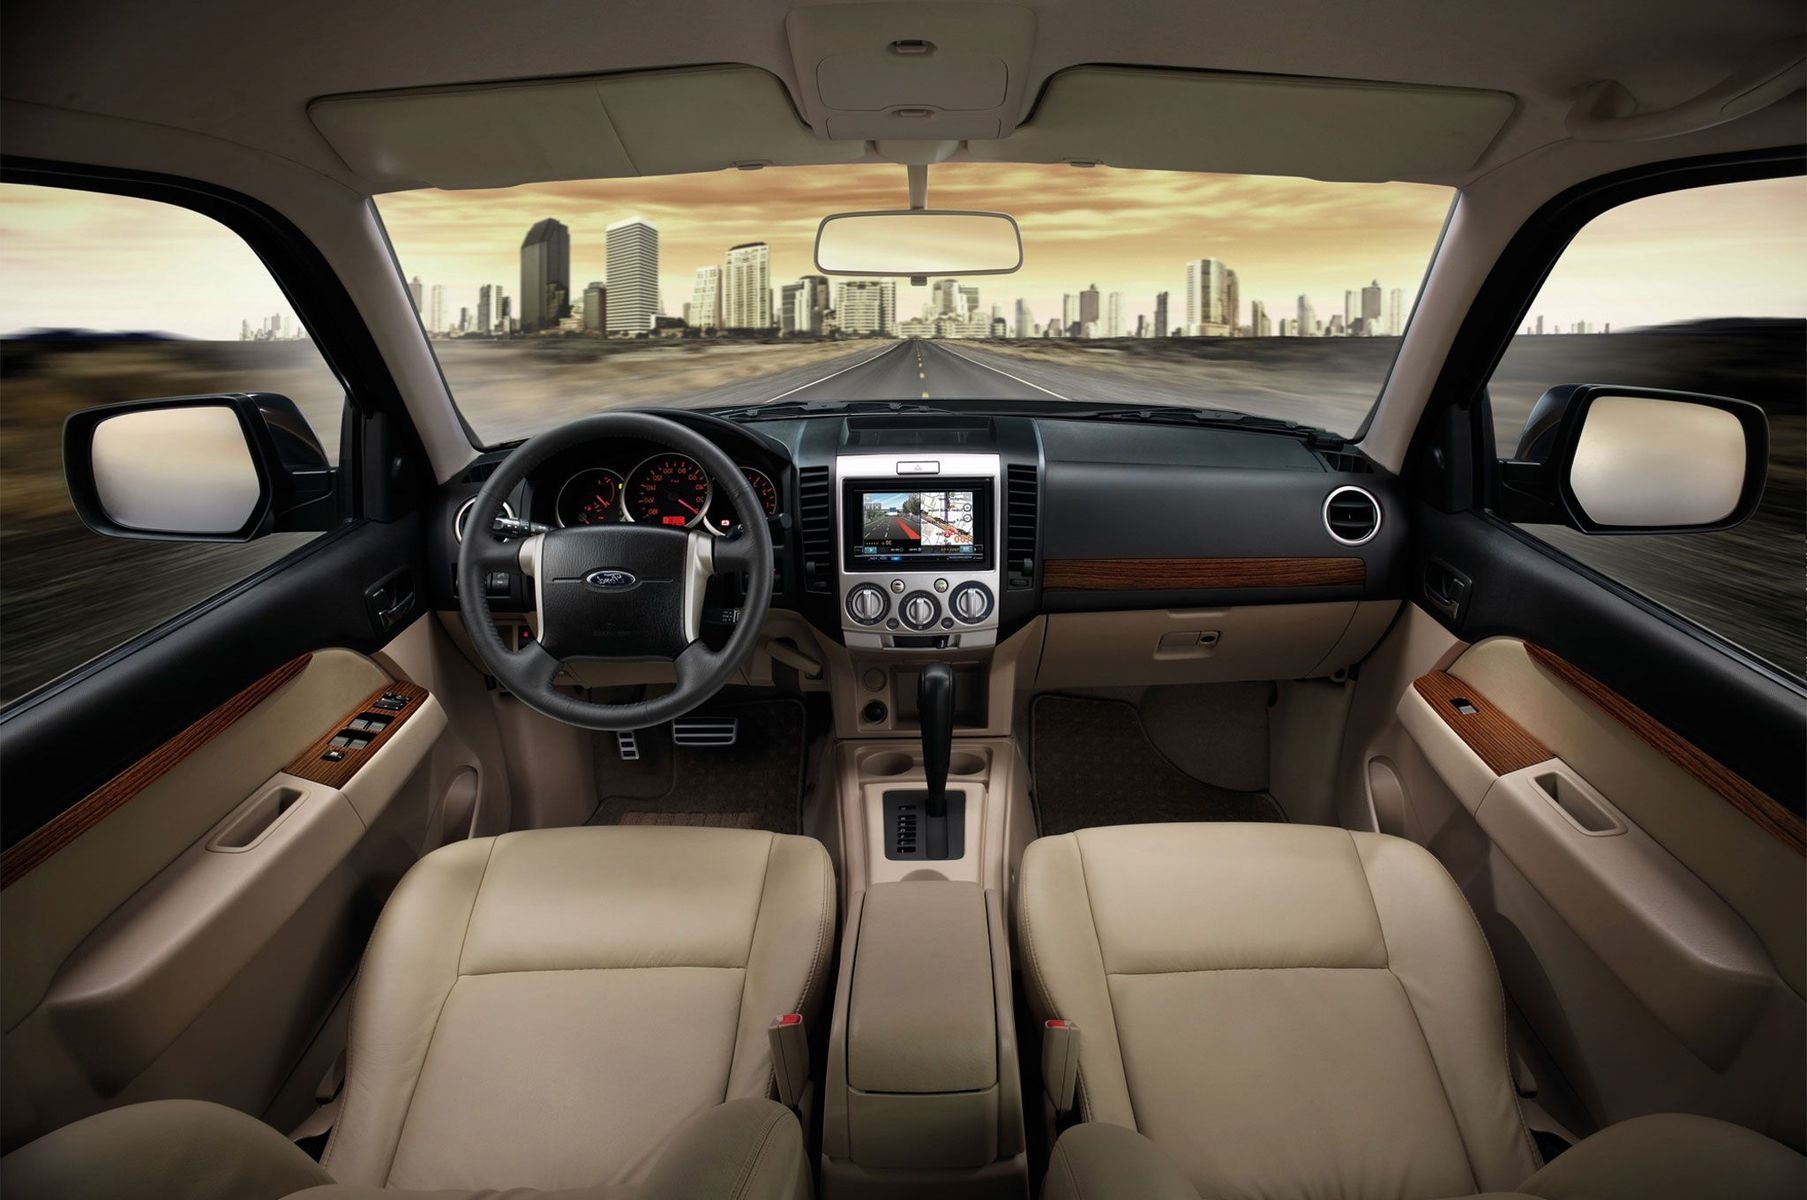 2018 Ford Everest interior - 2019 and 2020 New SUV Models